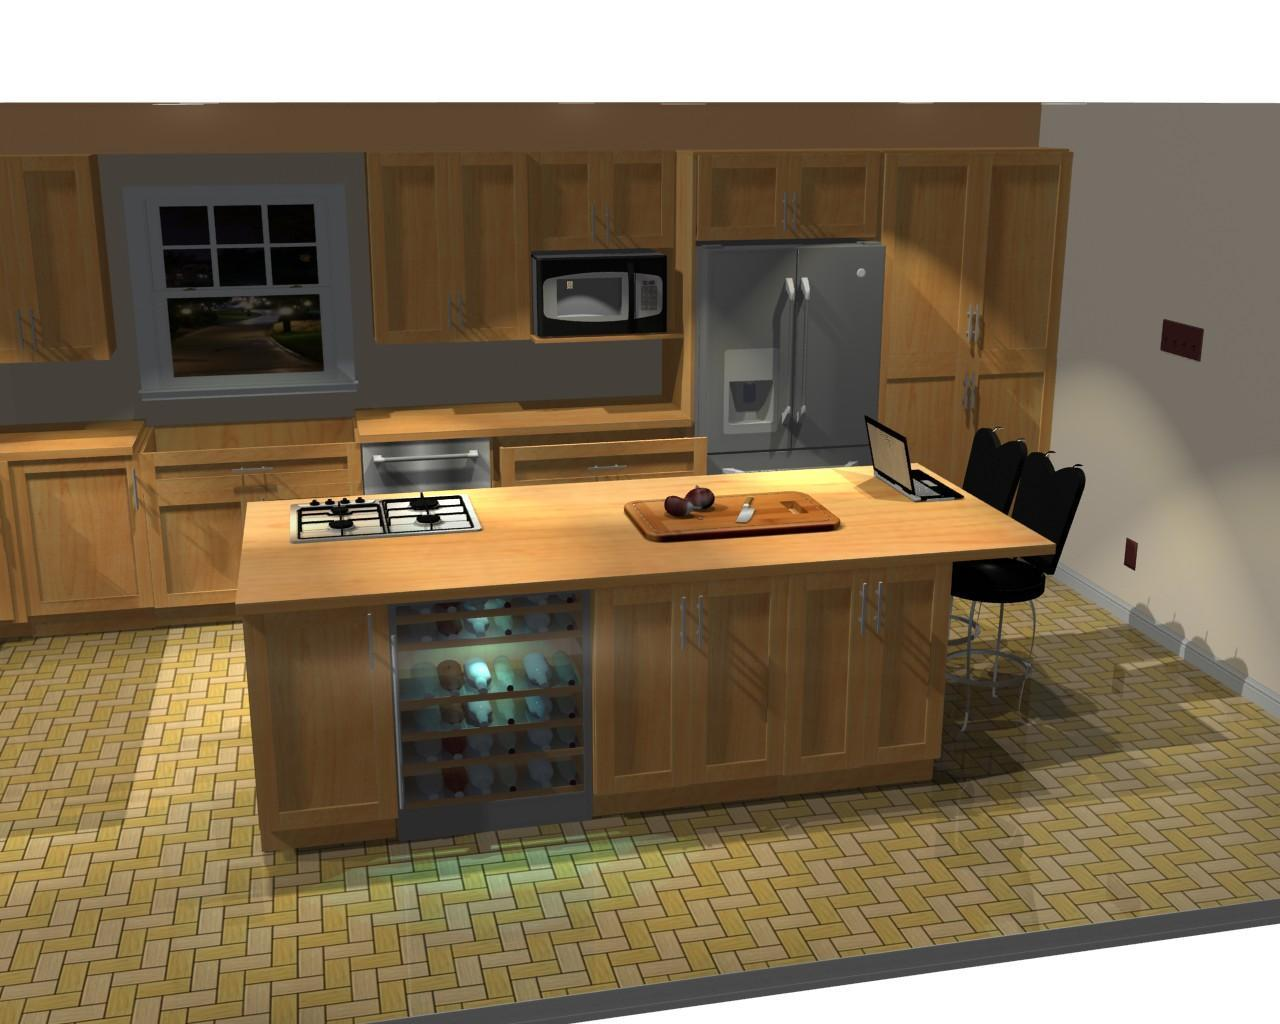 software for kitchen design industries kitchen design software 5592